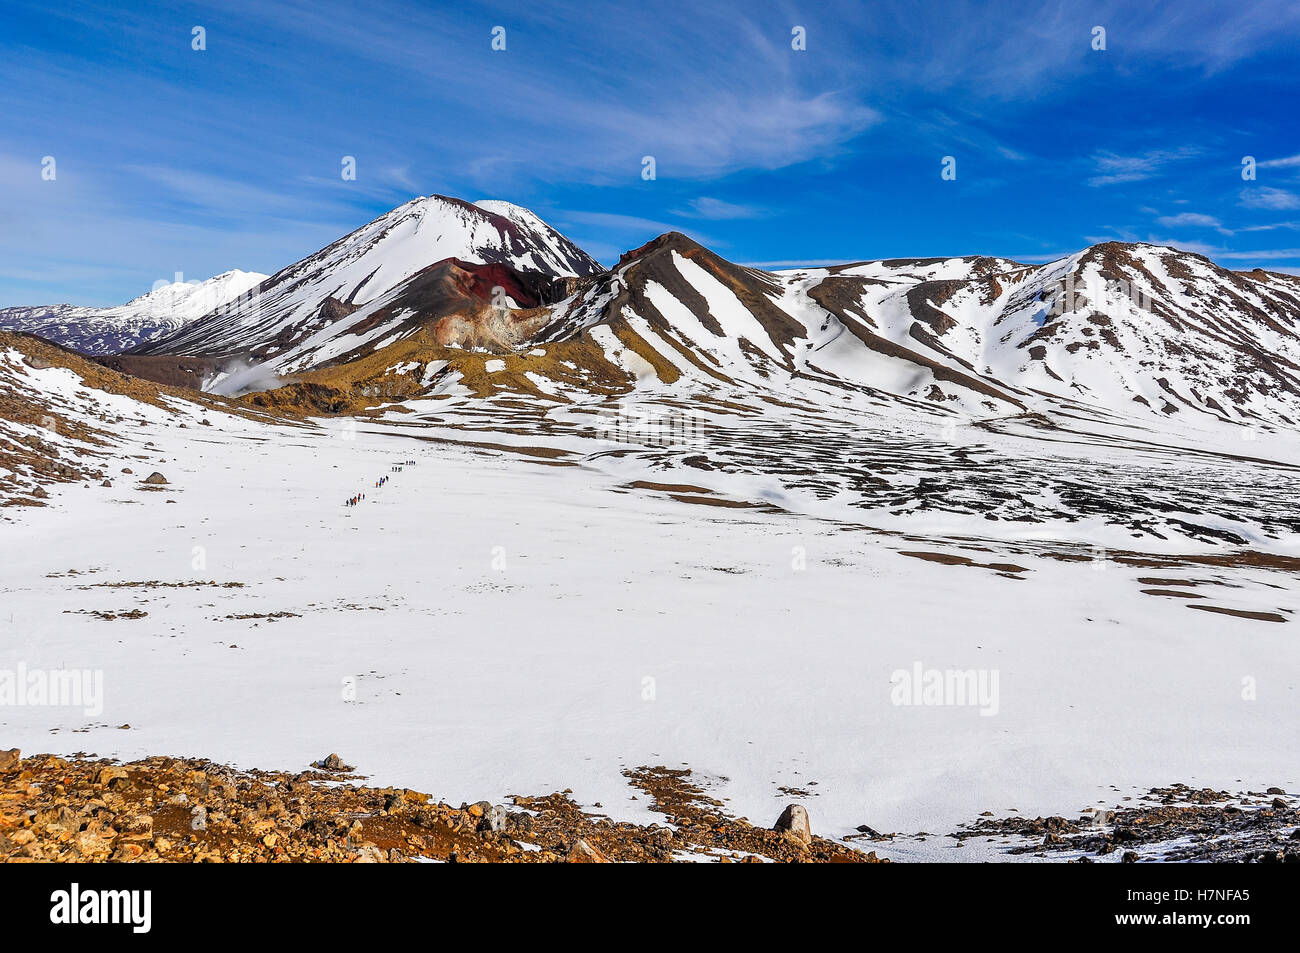 People crossing the Central Crater in the winter Tongariro Alpine Crossing, New Zealand - Stock Image